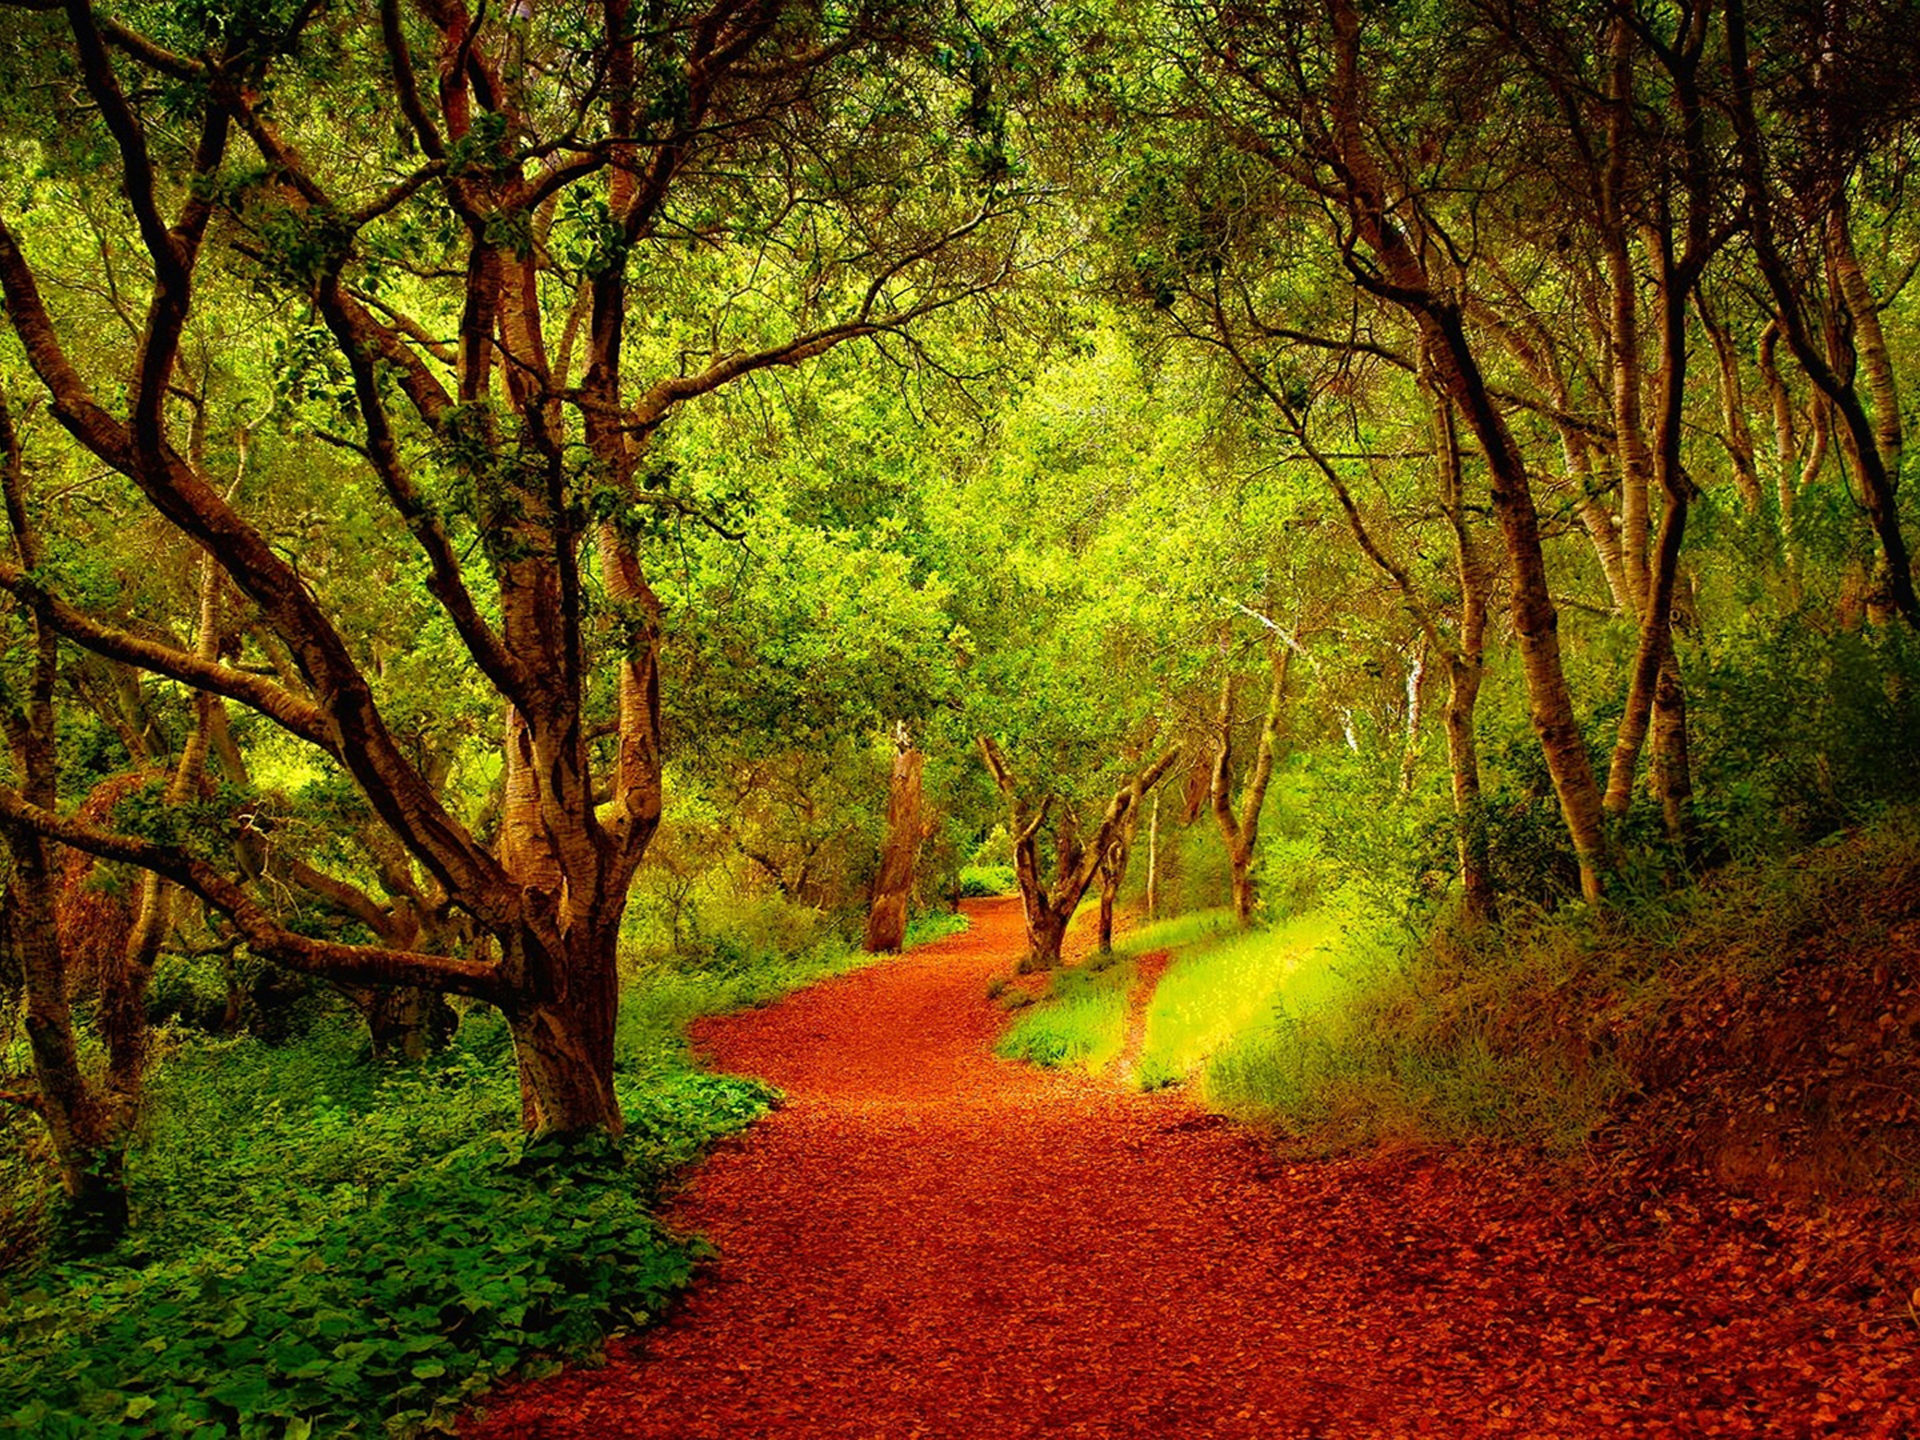 X Japan Iphone Wallpaper Beautiful Forest Pathway 03846 Wallpapers13 Com